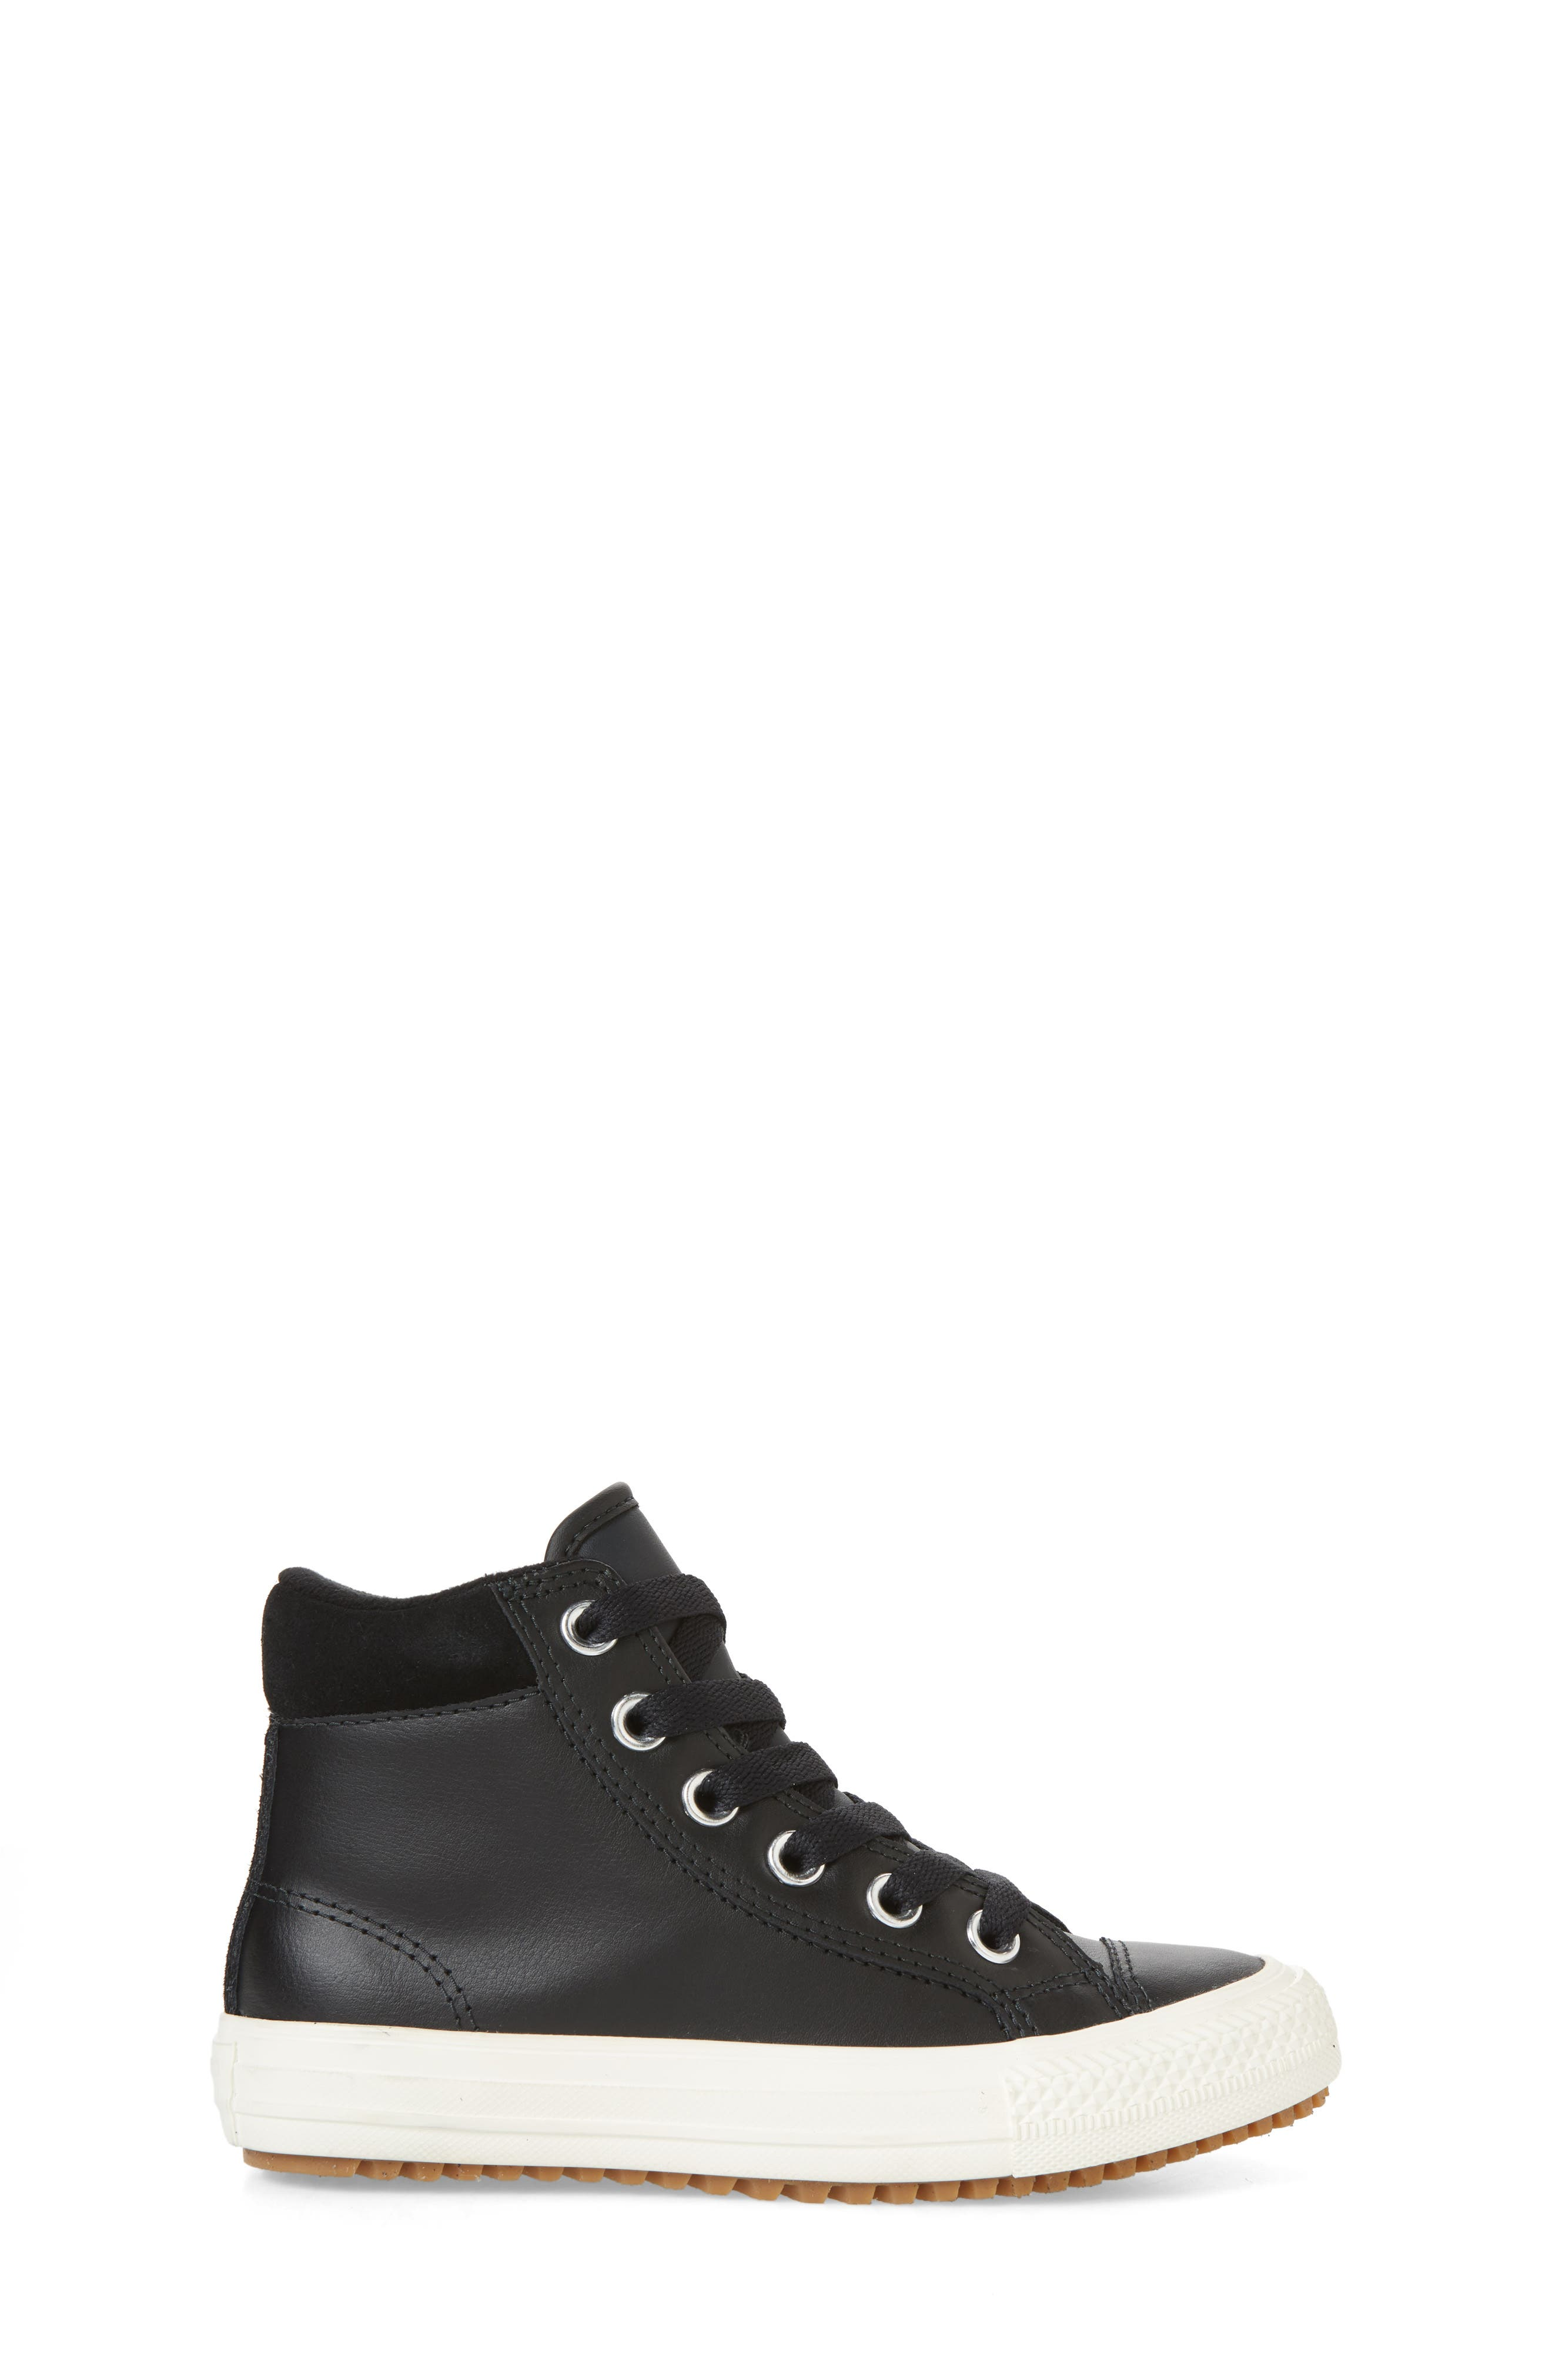 CONVERSE,                             Chuck Taylor<sup>®</sup> All Star<sup>®</sup> PC High Top Sneaker,                             Alternate thumbnail 3, color,                             BLACK